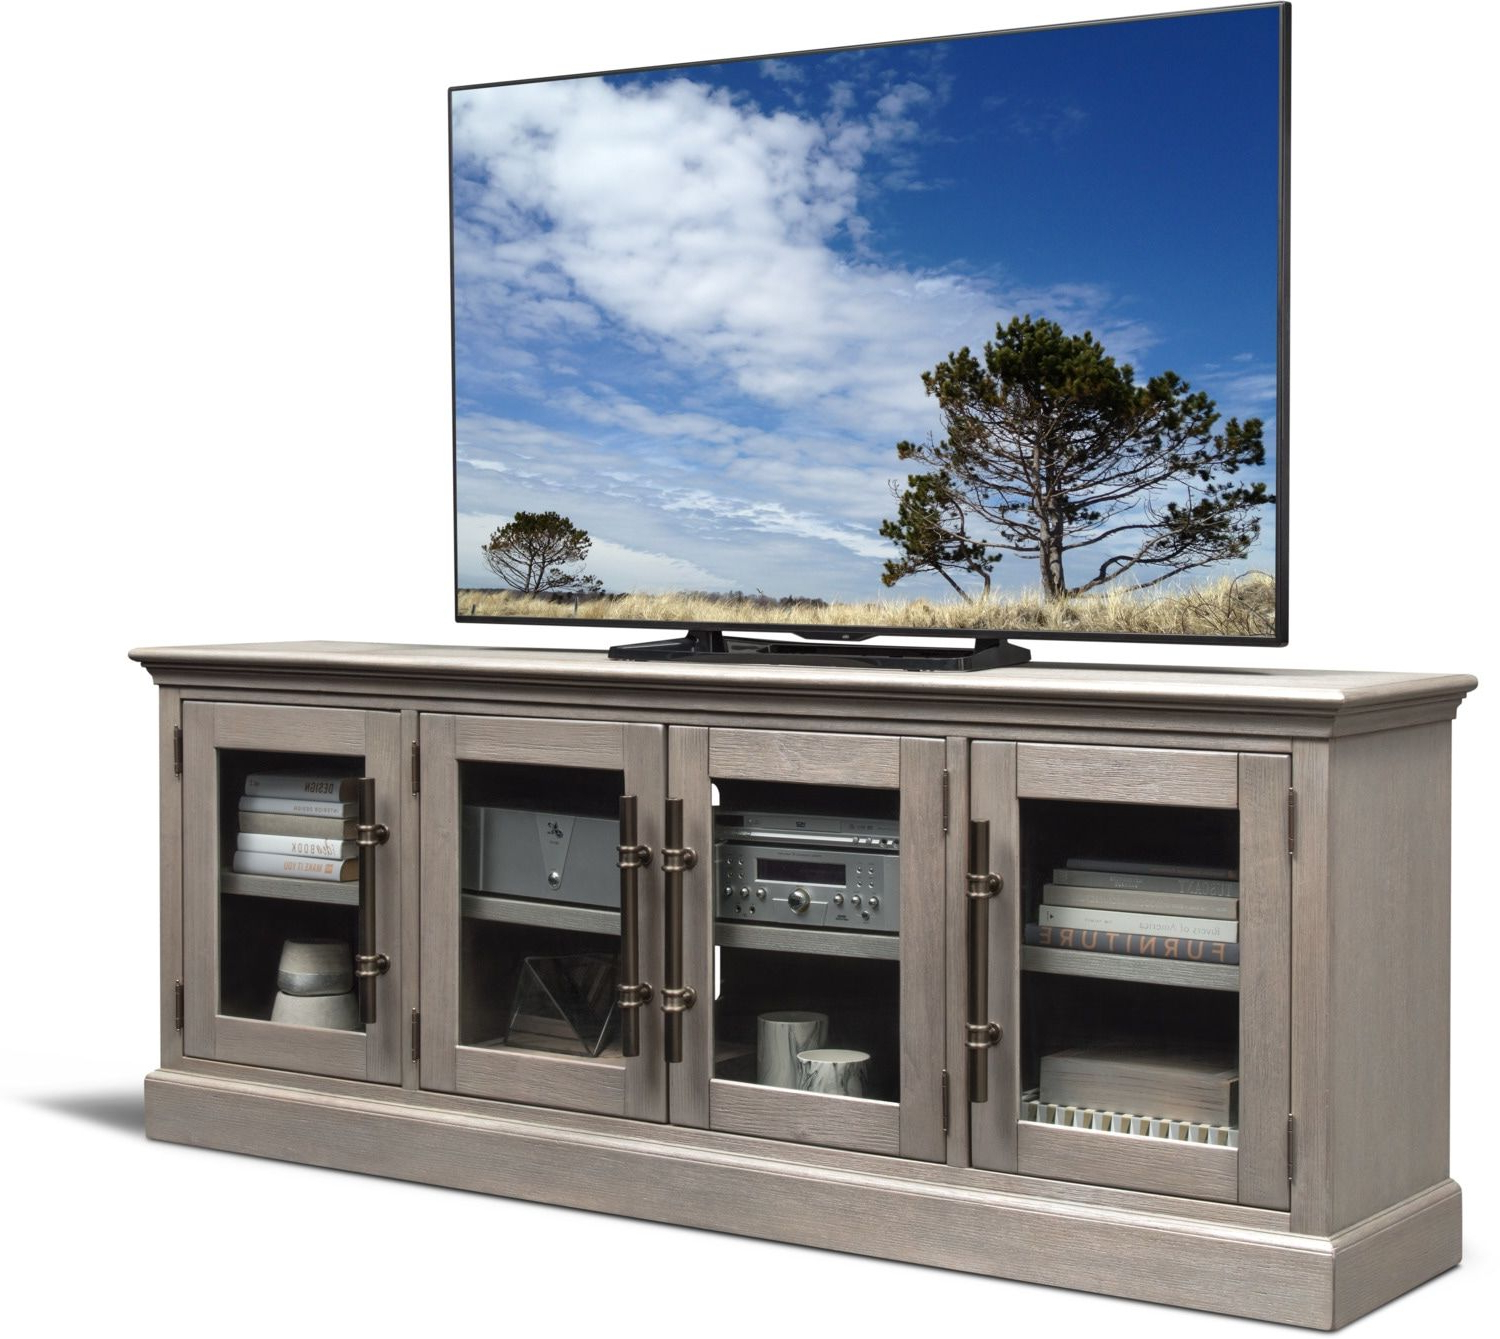 Living Rooms, Bedrooms, Dining Rooms, Reclining Furniture Throughout Current Wakefield 85 Inch Tv Stands (View 9 of 20)